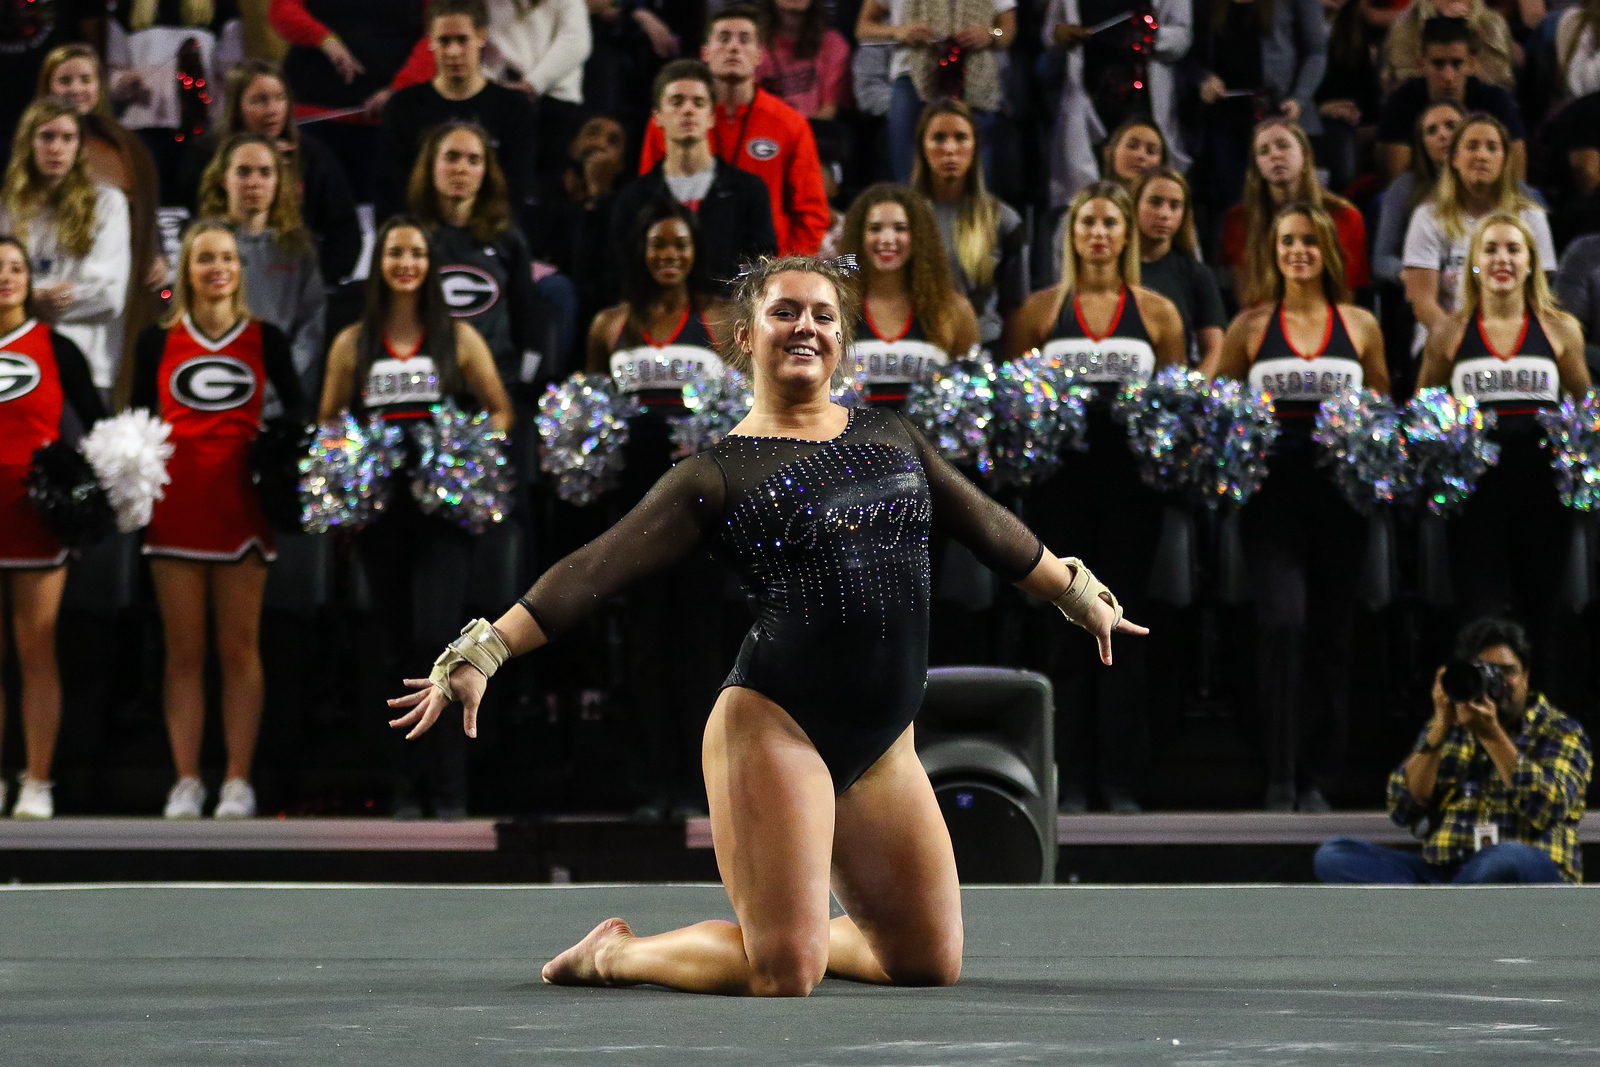 Georgia's Rachael Lukacs during a gymnastics meet between the University of Georgia and Ohio State University in Stegeman Coliseum in Athens, Ga., on Saturday, Jan. 5, 2019. (Photo by Kristin M. Bradshaw)